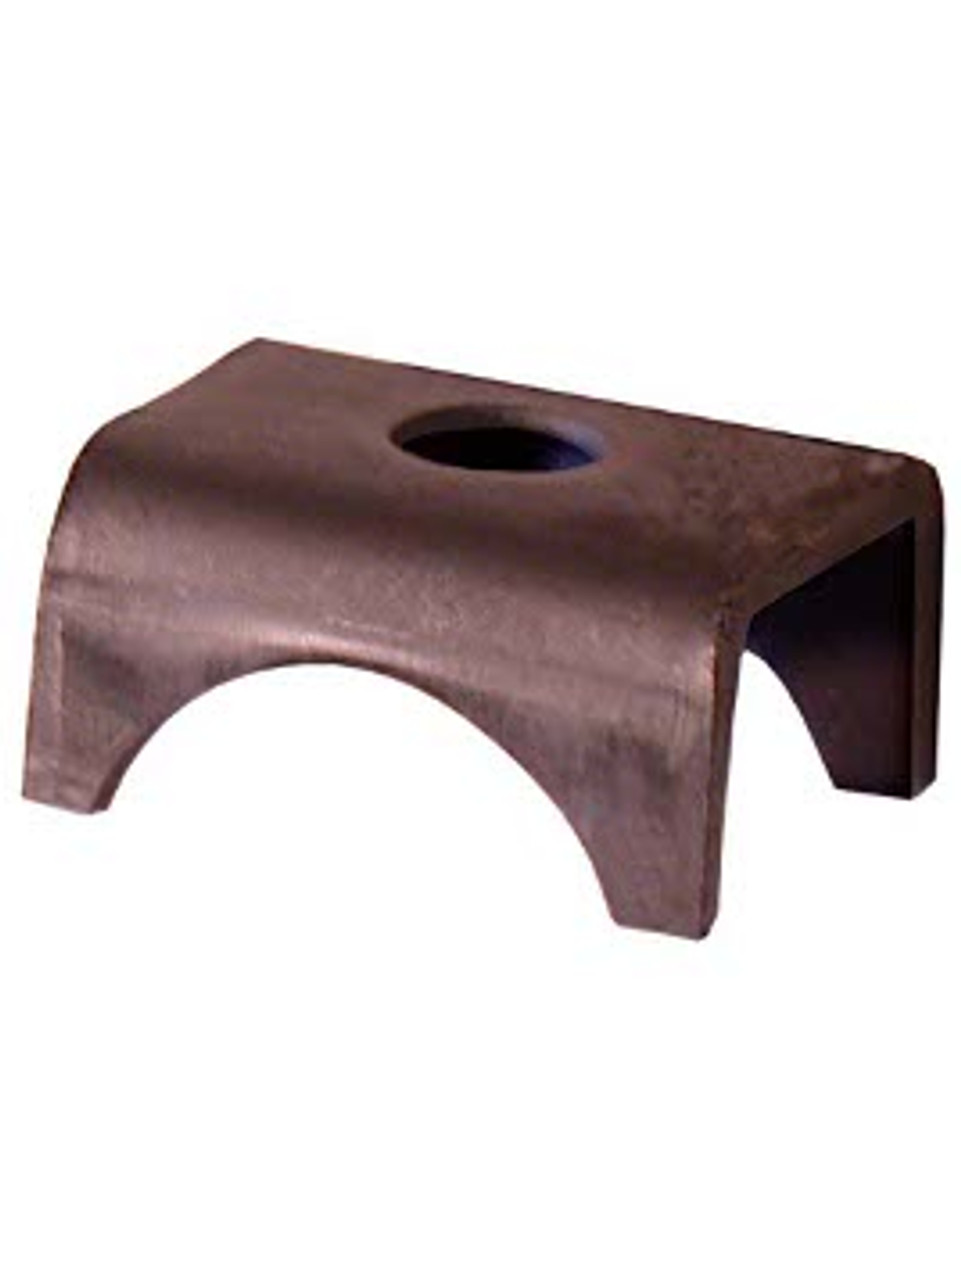 """S175 --- Spring Seat for 1-3/4"""" Round Axle"""